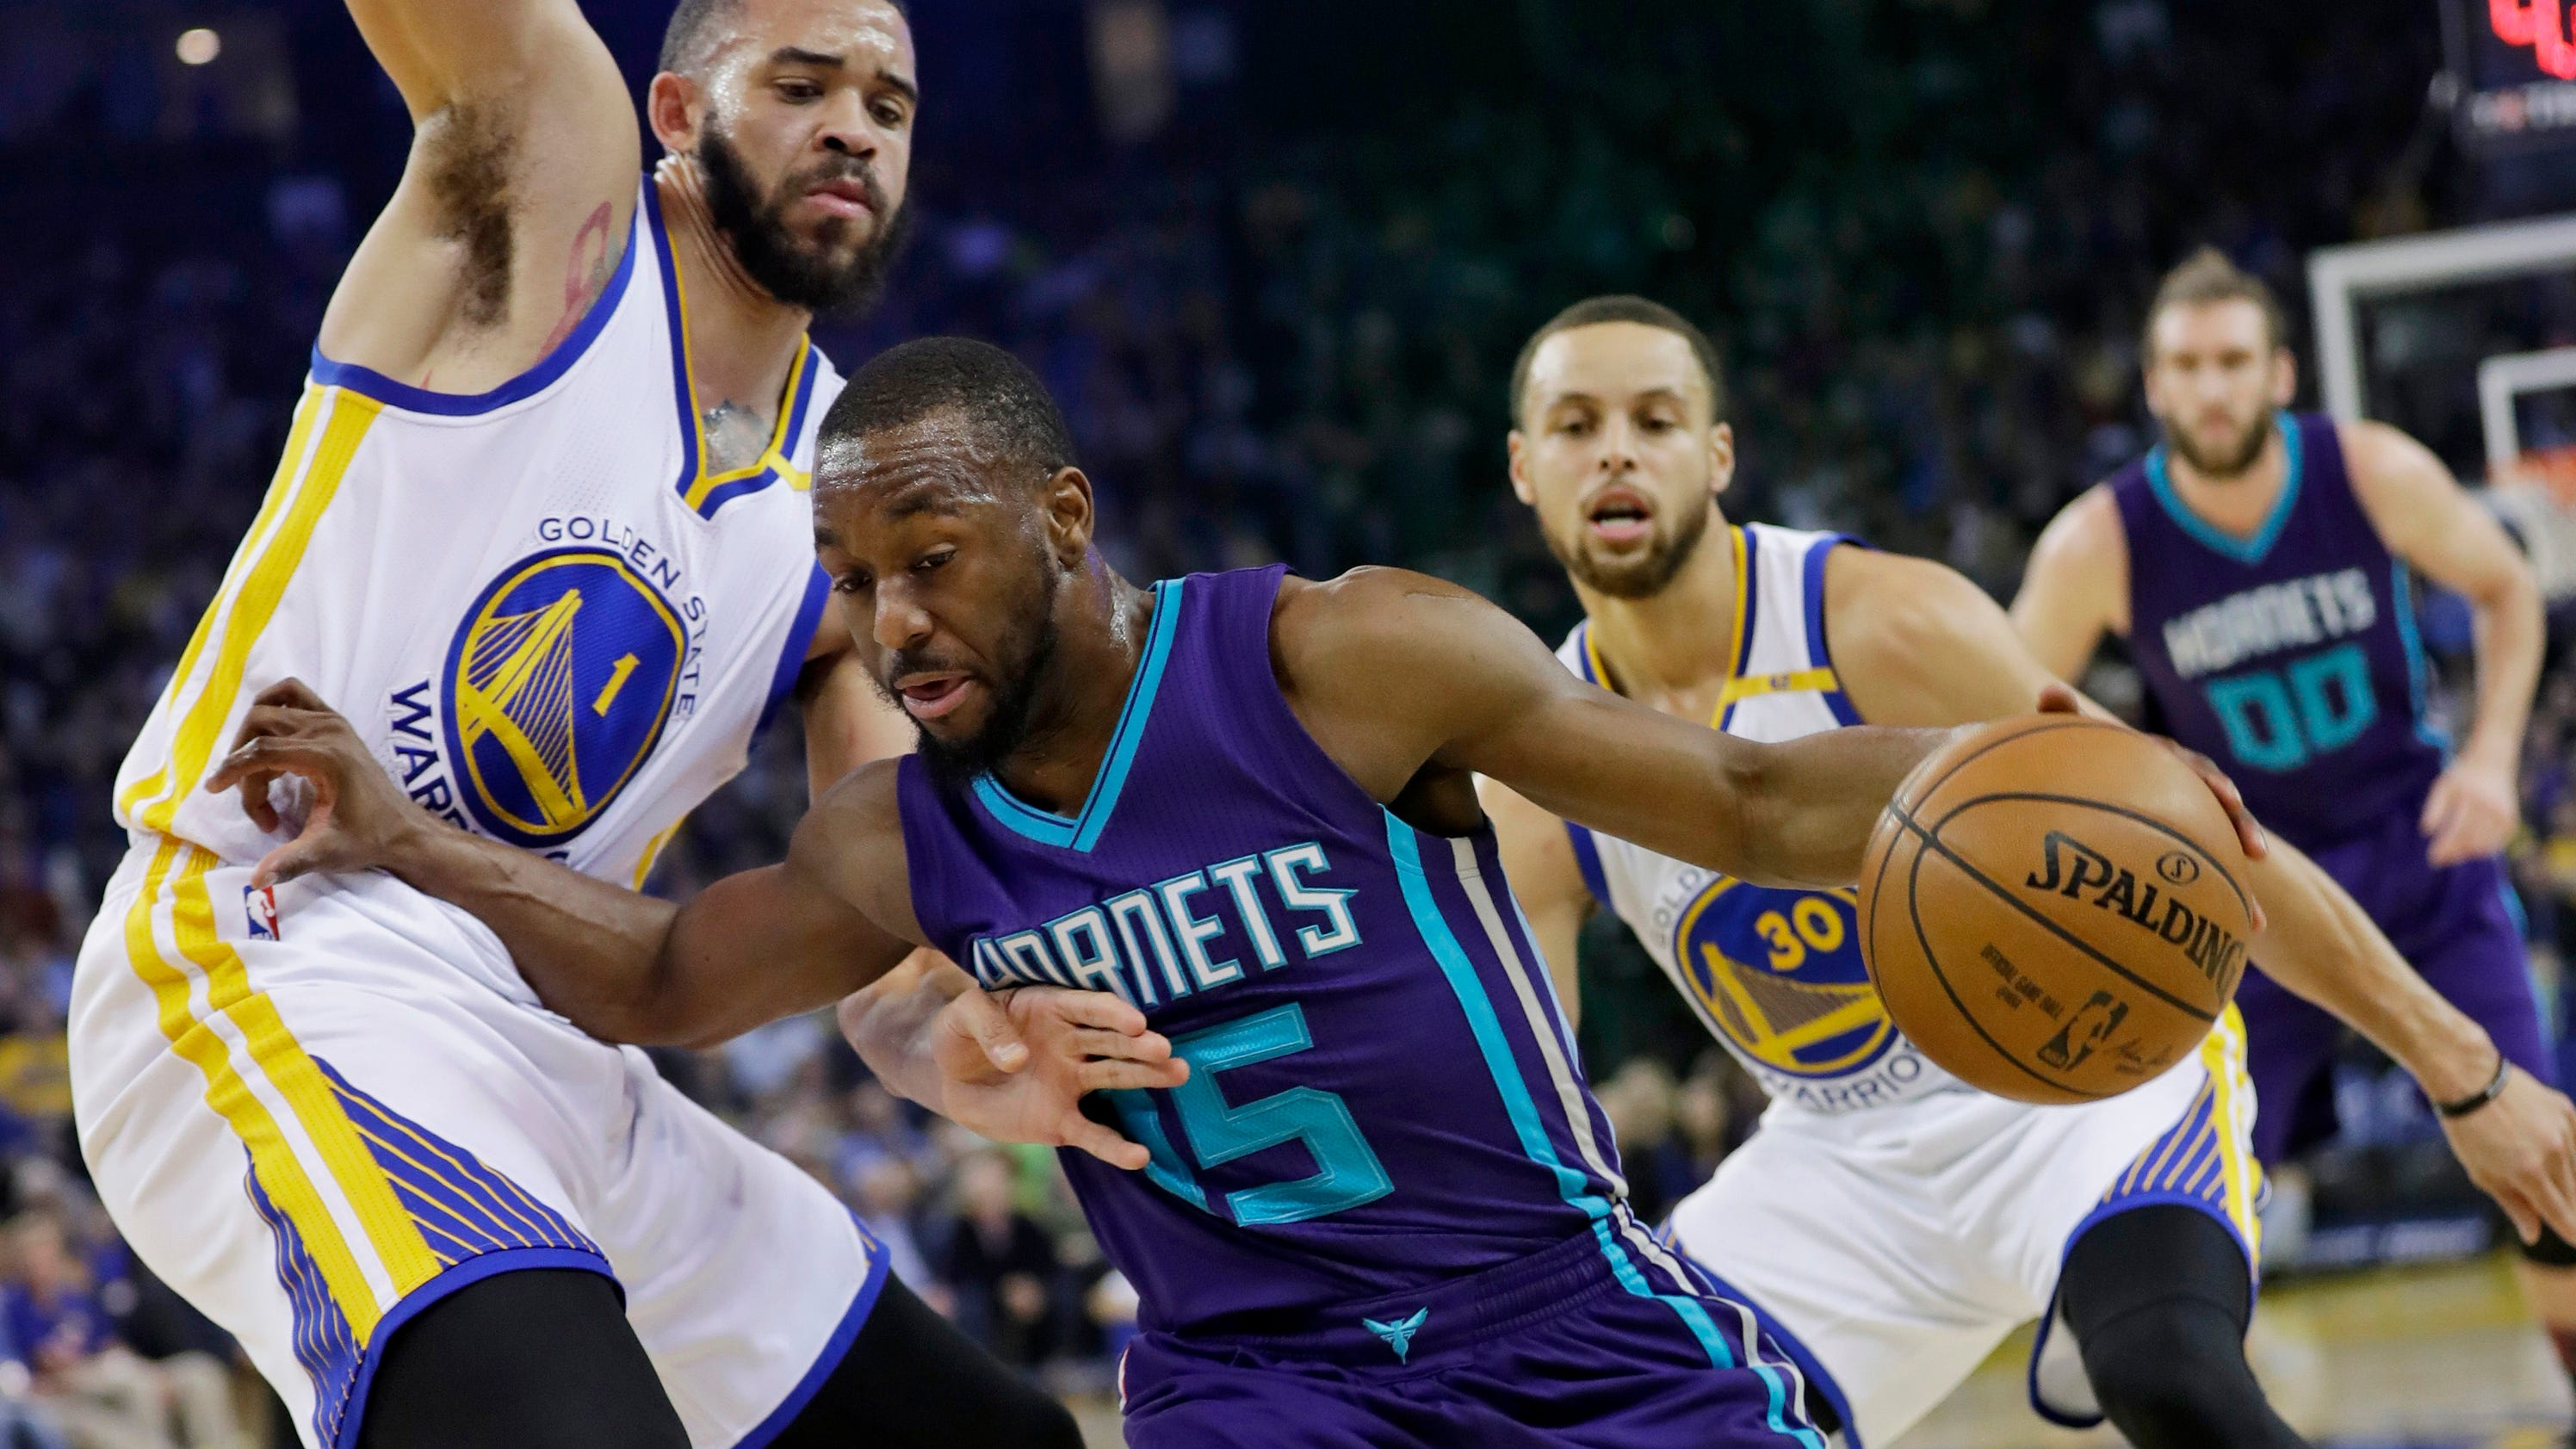 Stephen Curry's 3-point clinic leads Warriors past Hornets